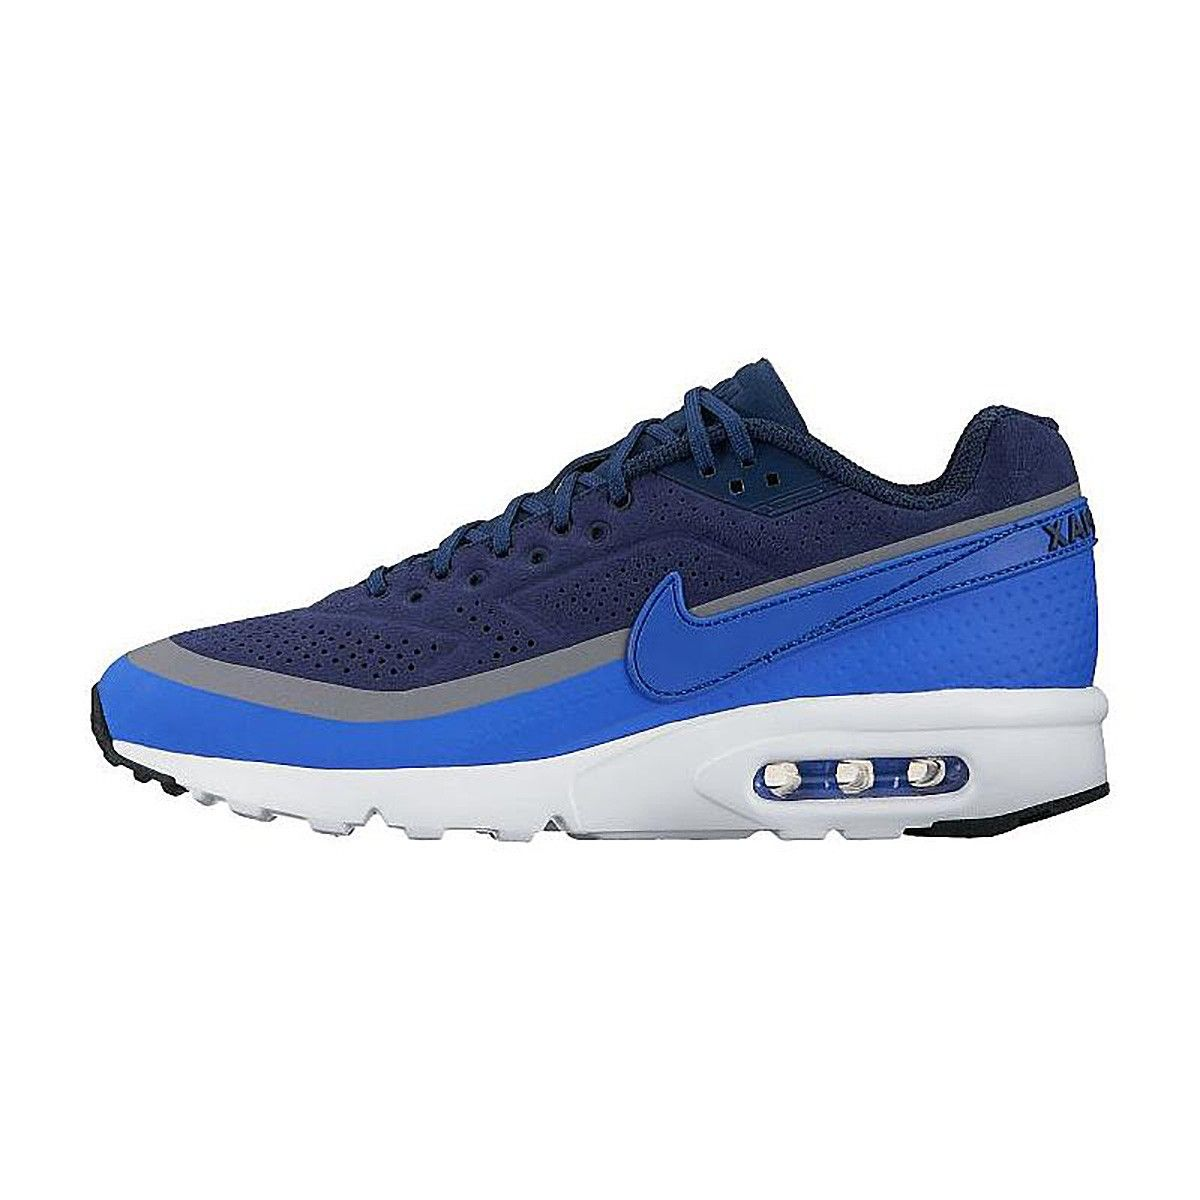 best cheap buying now more photos Baskets Nike AIR MAX BW ULTRA MOIRE - Pegashoes